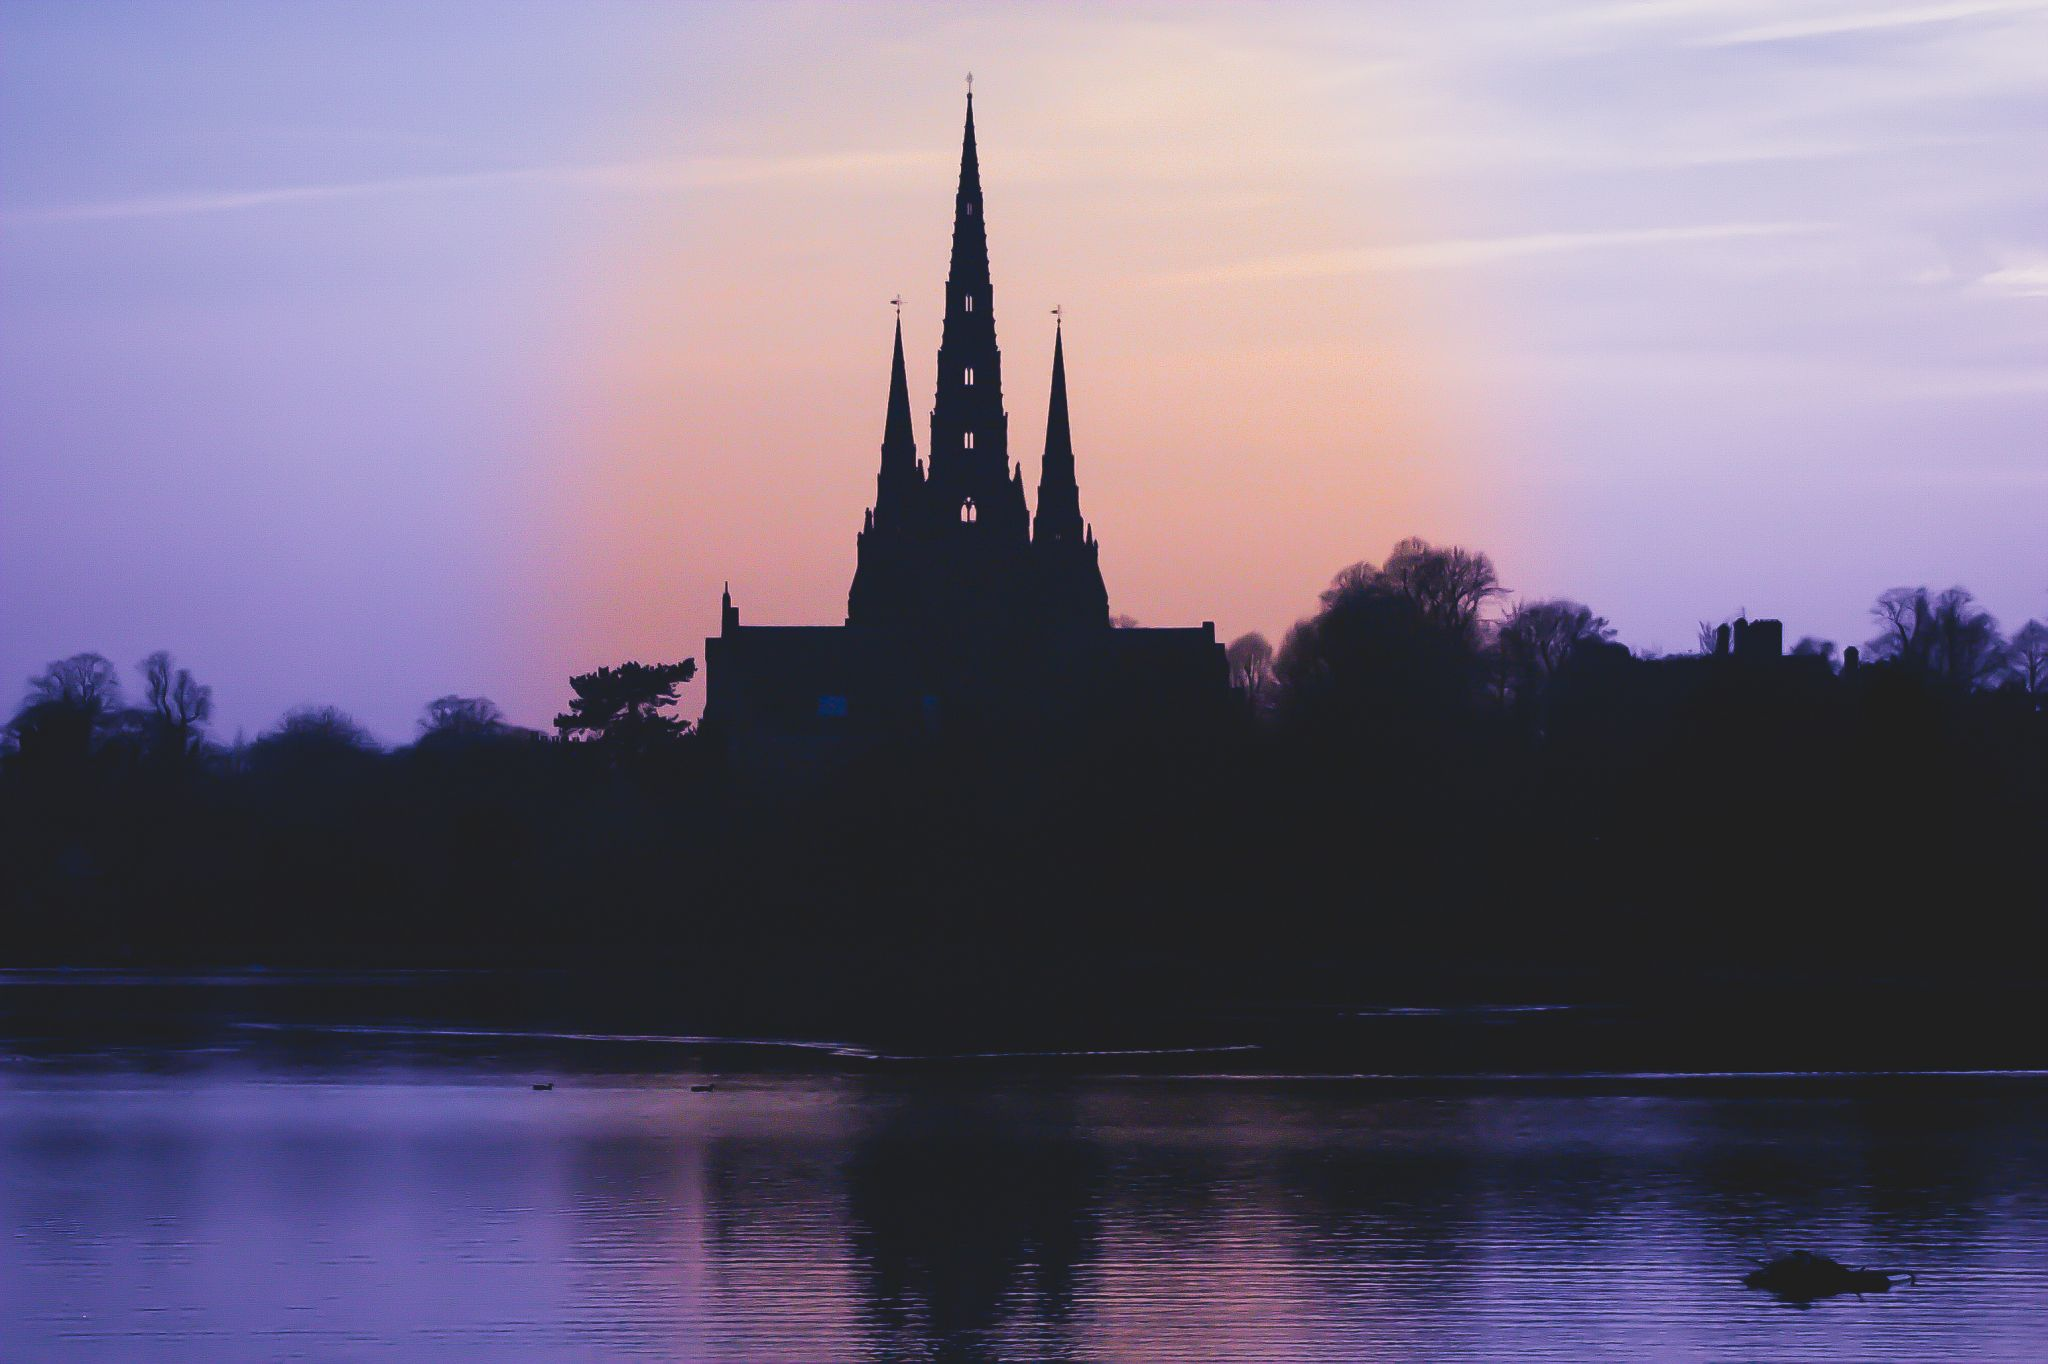 Lichfield cathedral from Stowe Pool, United Kingdom